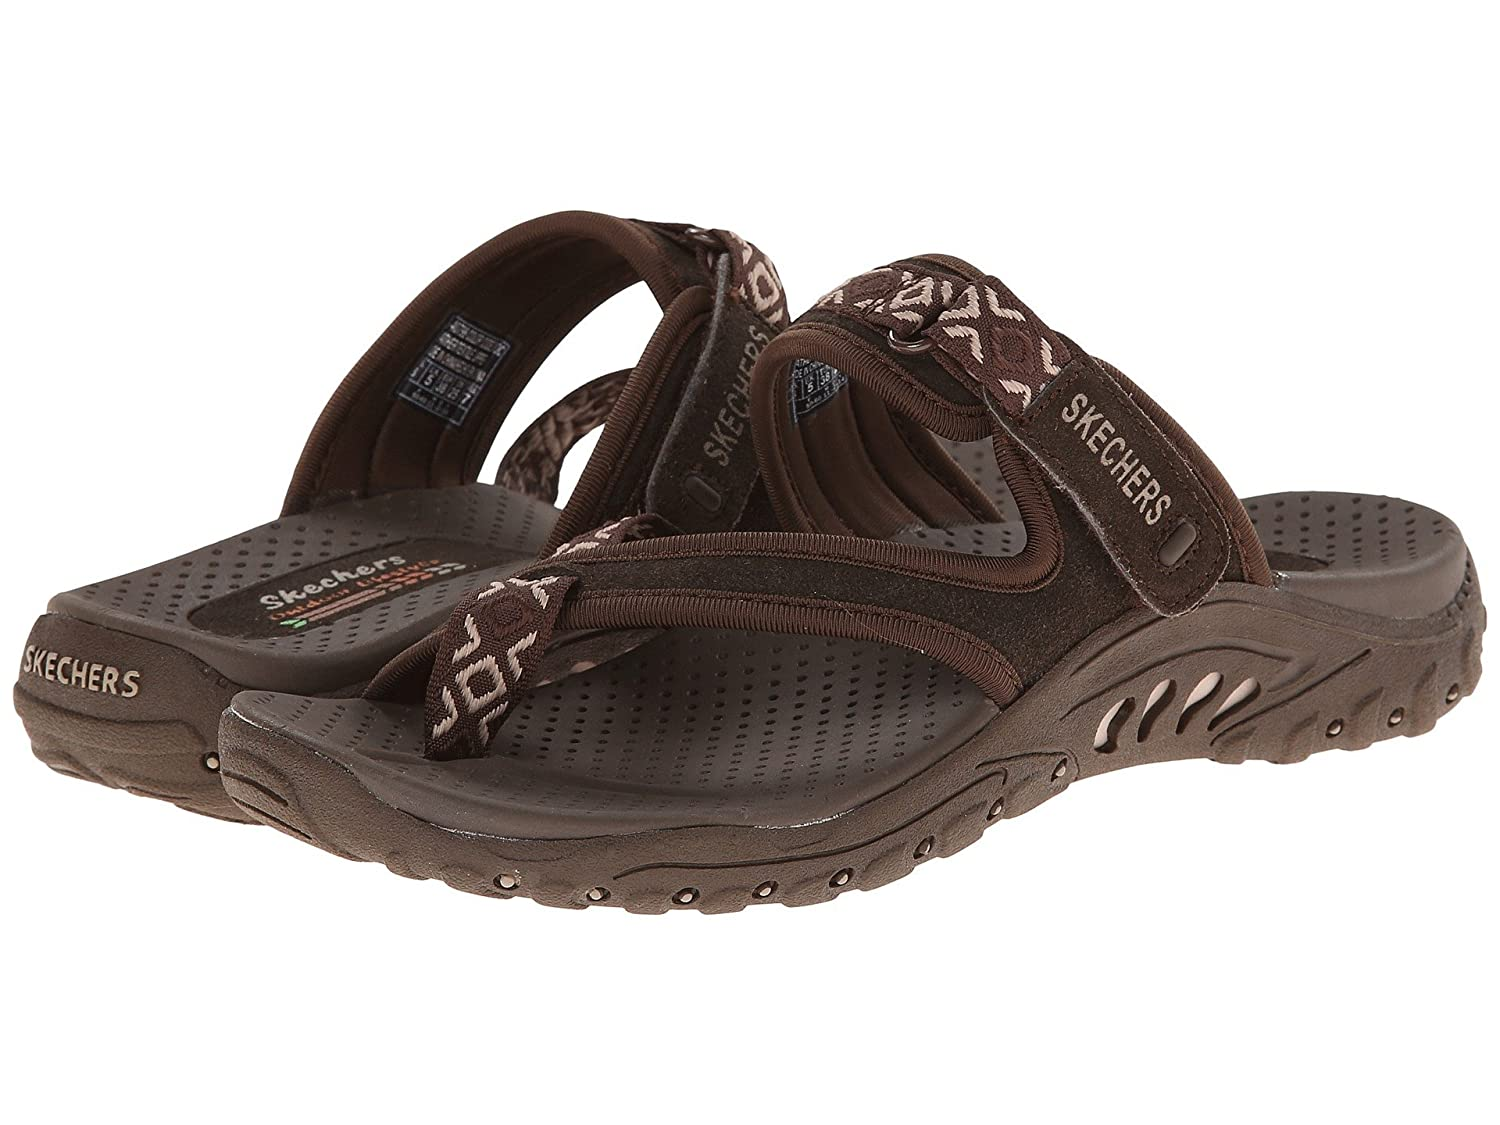 Skechers Women's Reggae-Zig Swag Sandals Flip-Flop B07CQRD5Y2 7.5 B(M) US|Chocolate/Cream